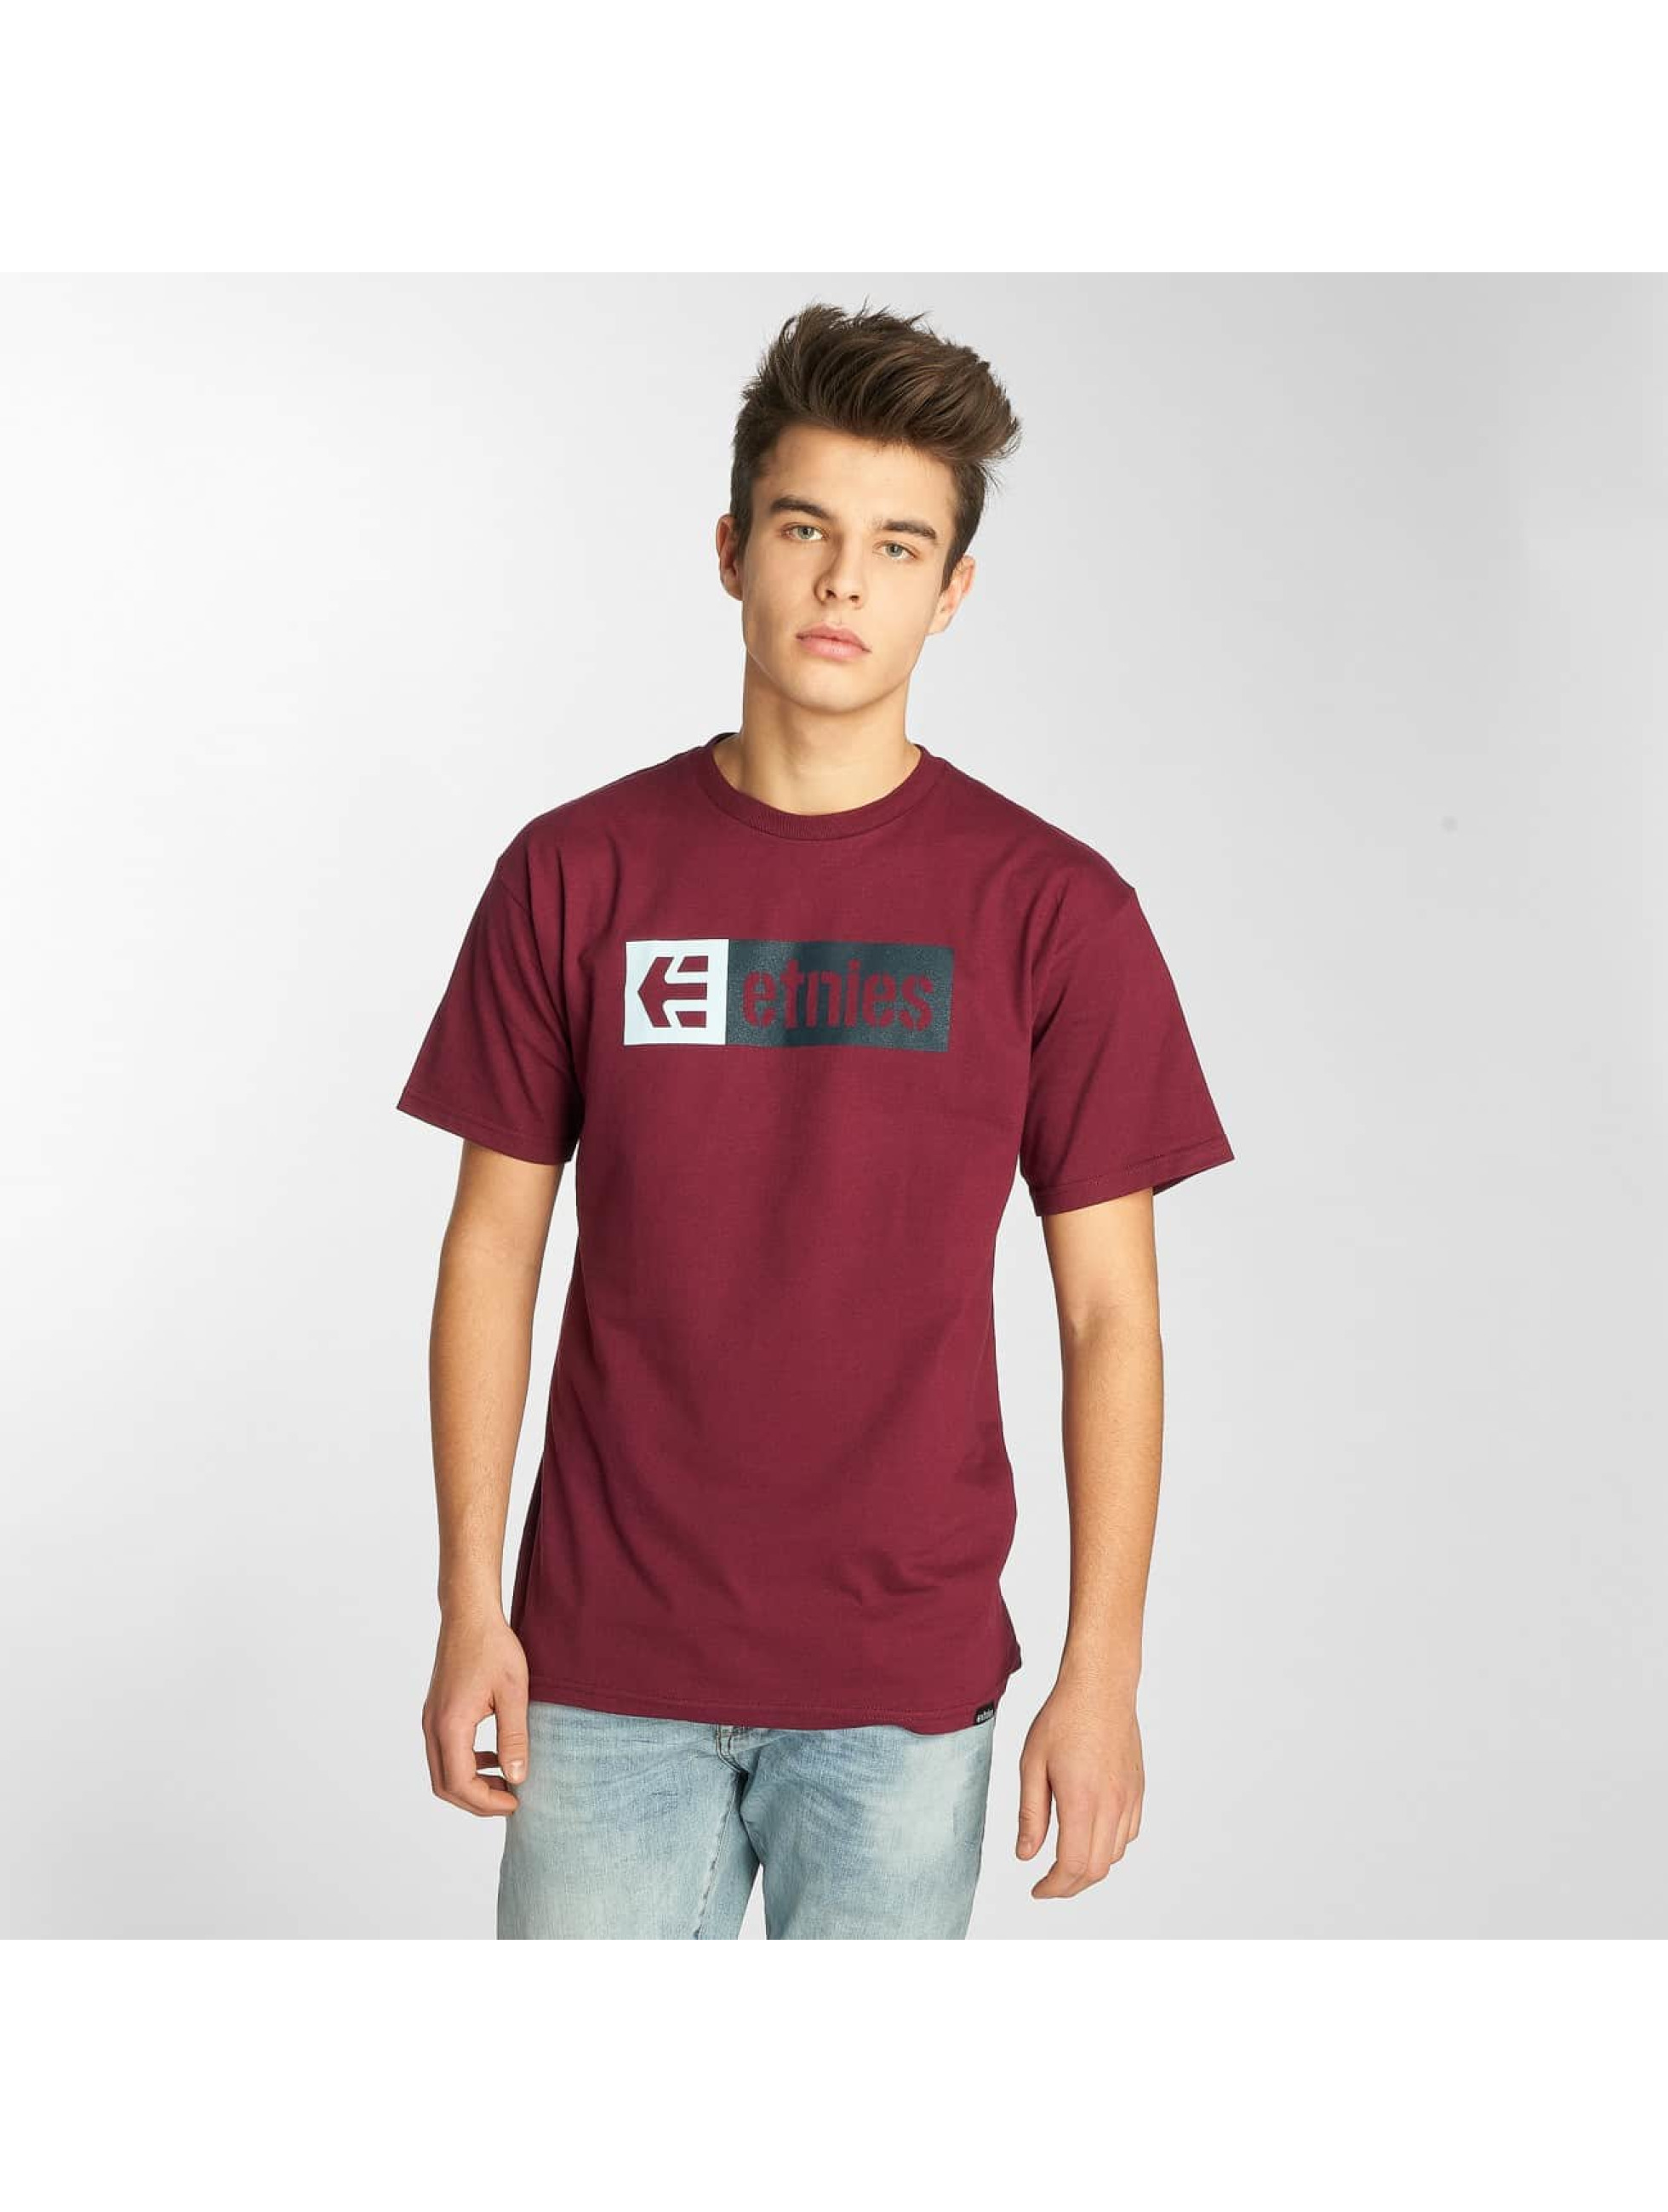 Etnies T-Shirt New Box red